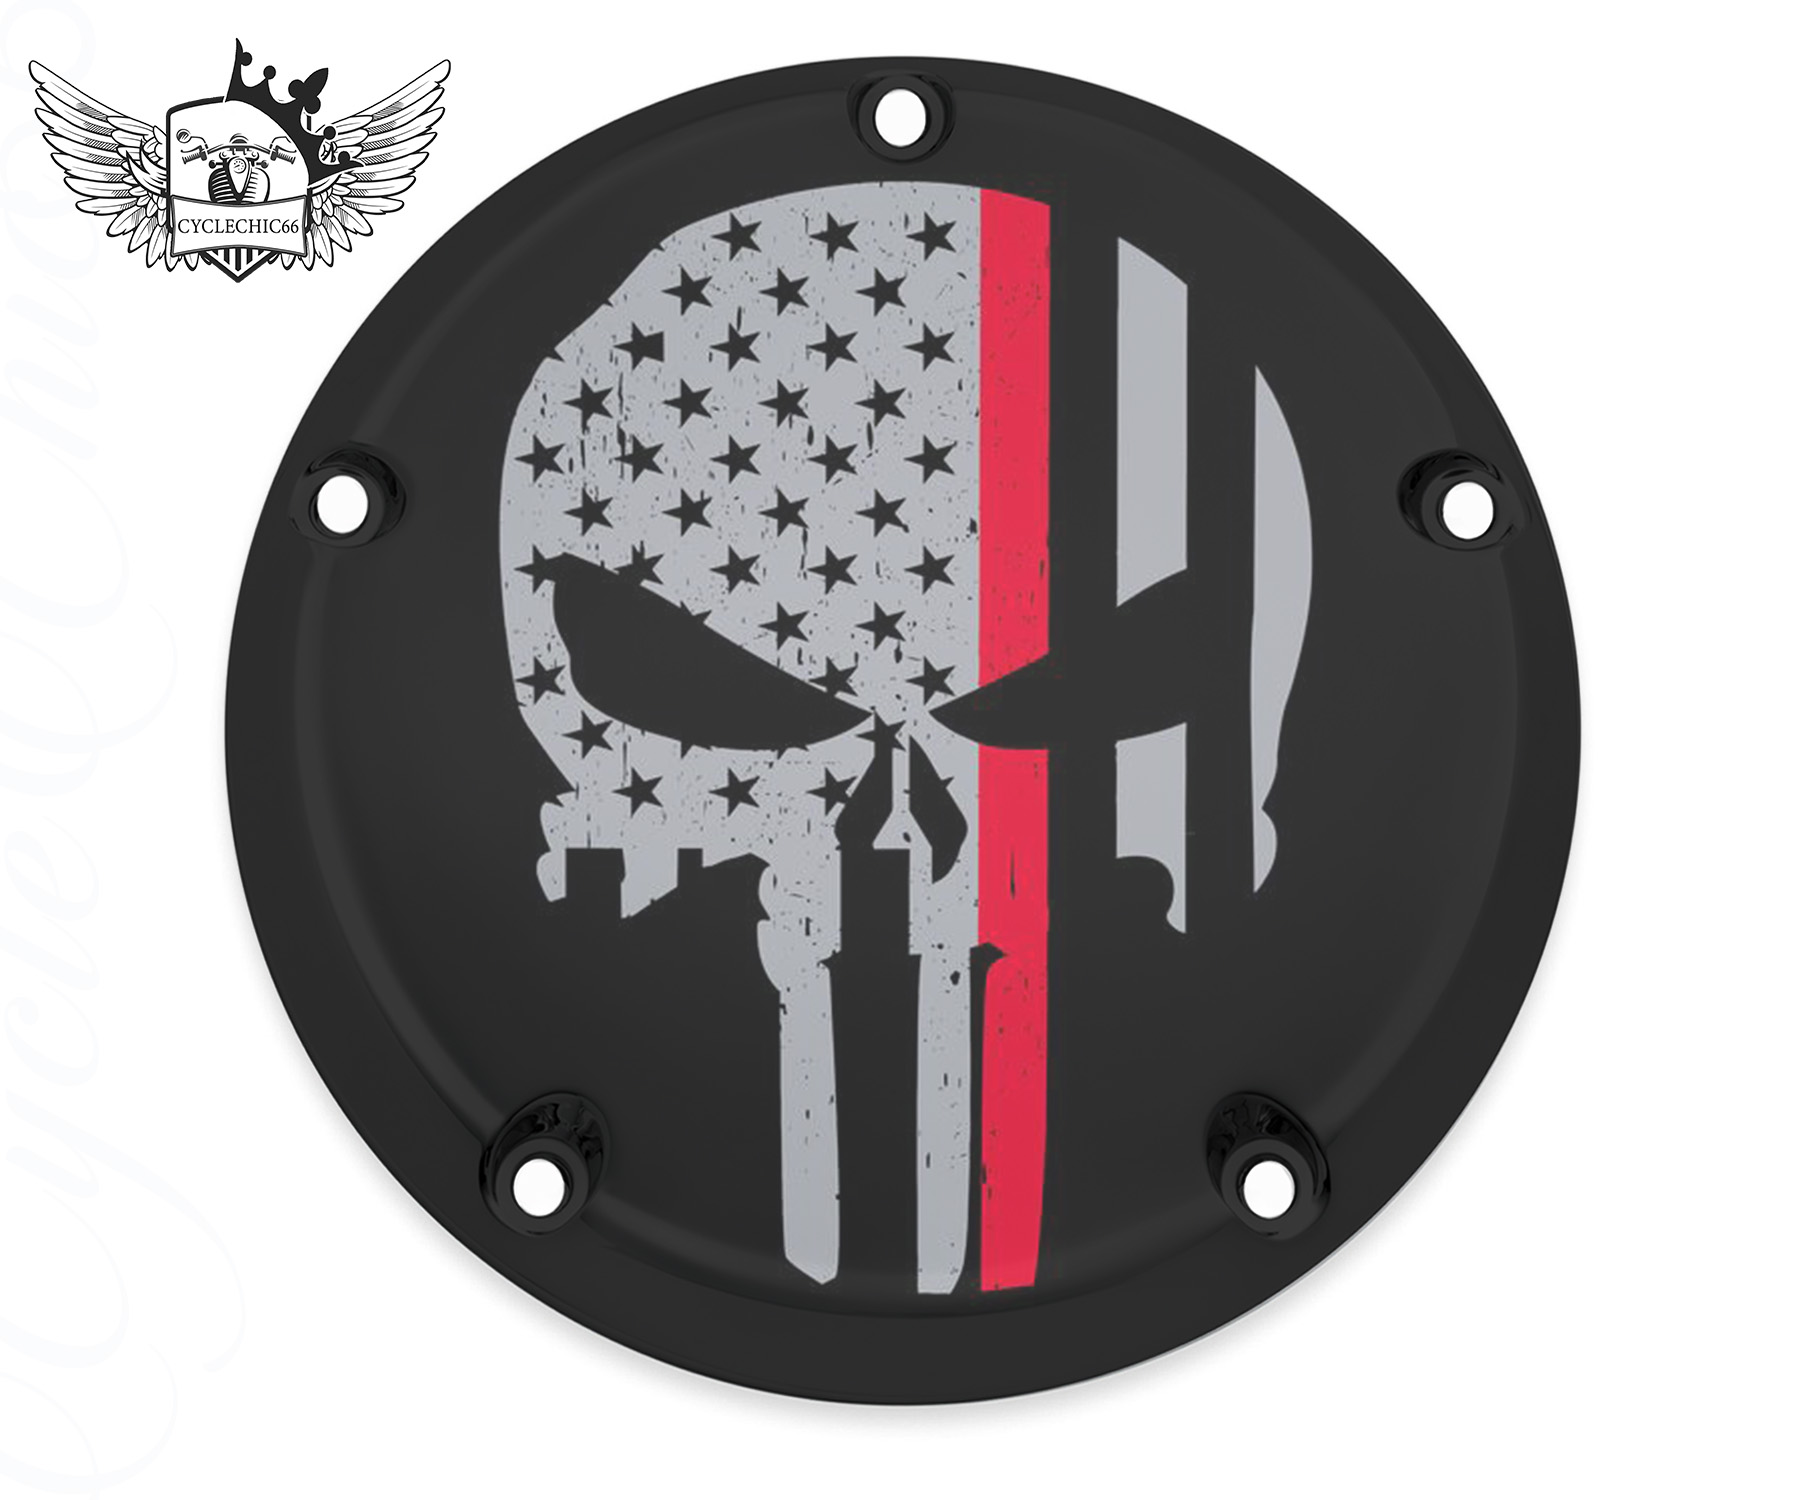 Harley Davidson Derby/Clutch Cover - Punisher - Thin Red Line